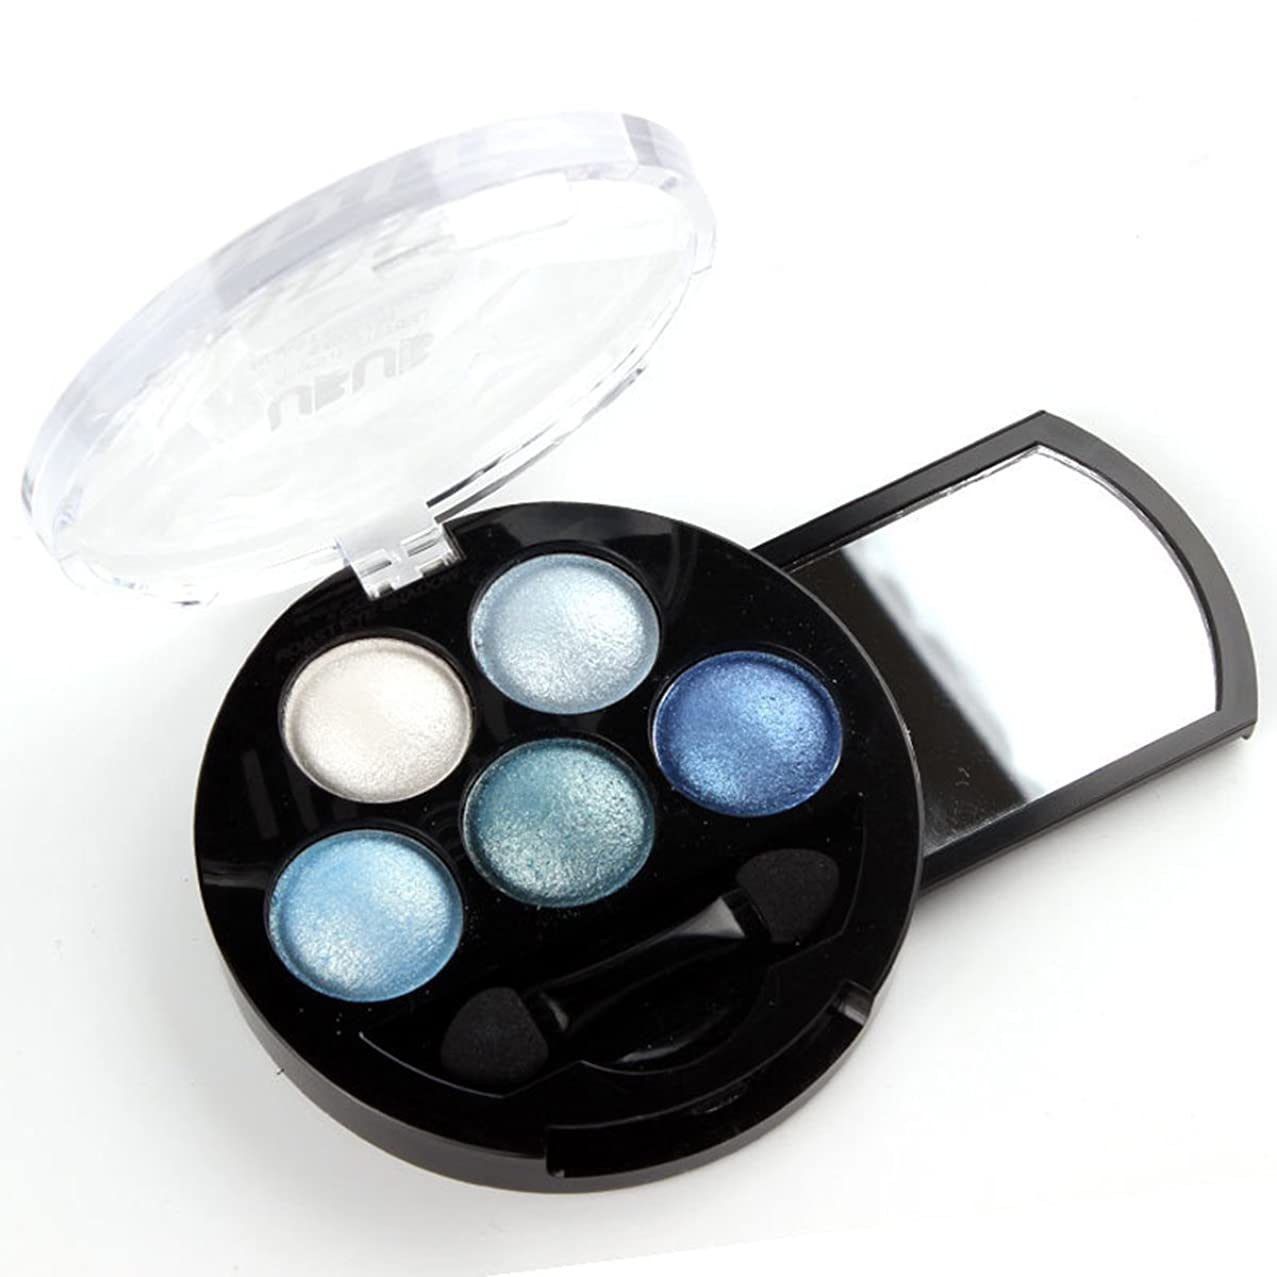 一元化するピストン故意の(Blue) - HugeStore 5 Colours Glitter Eyeshadow Eye Shadow Powder Palette Shimmer Metallic Blue